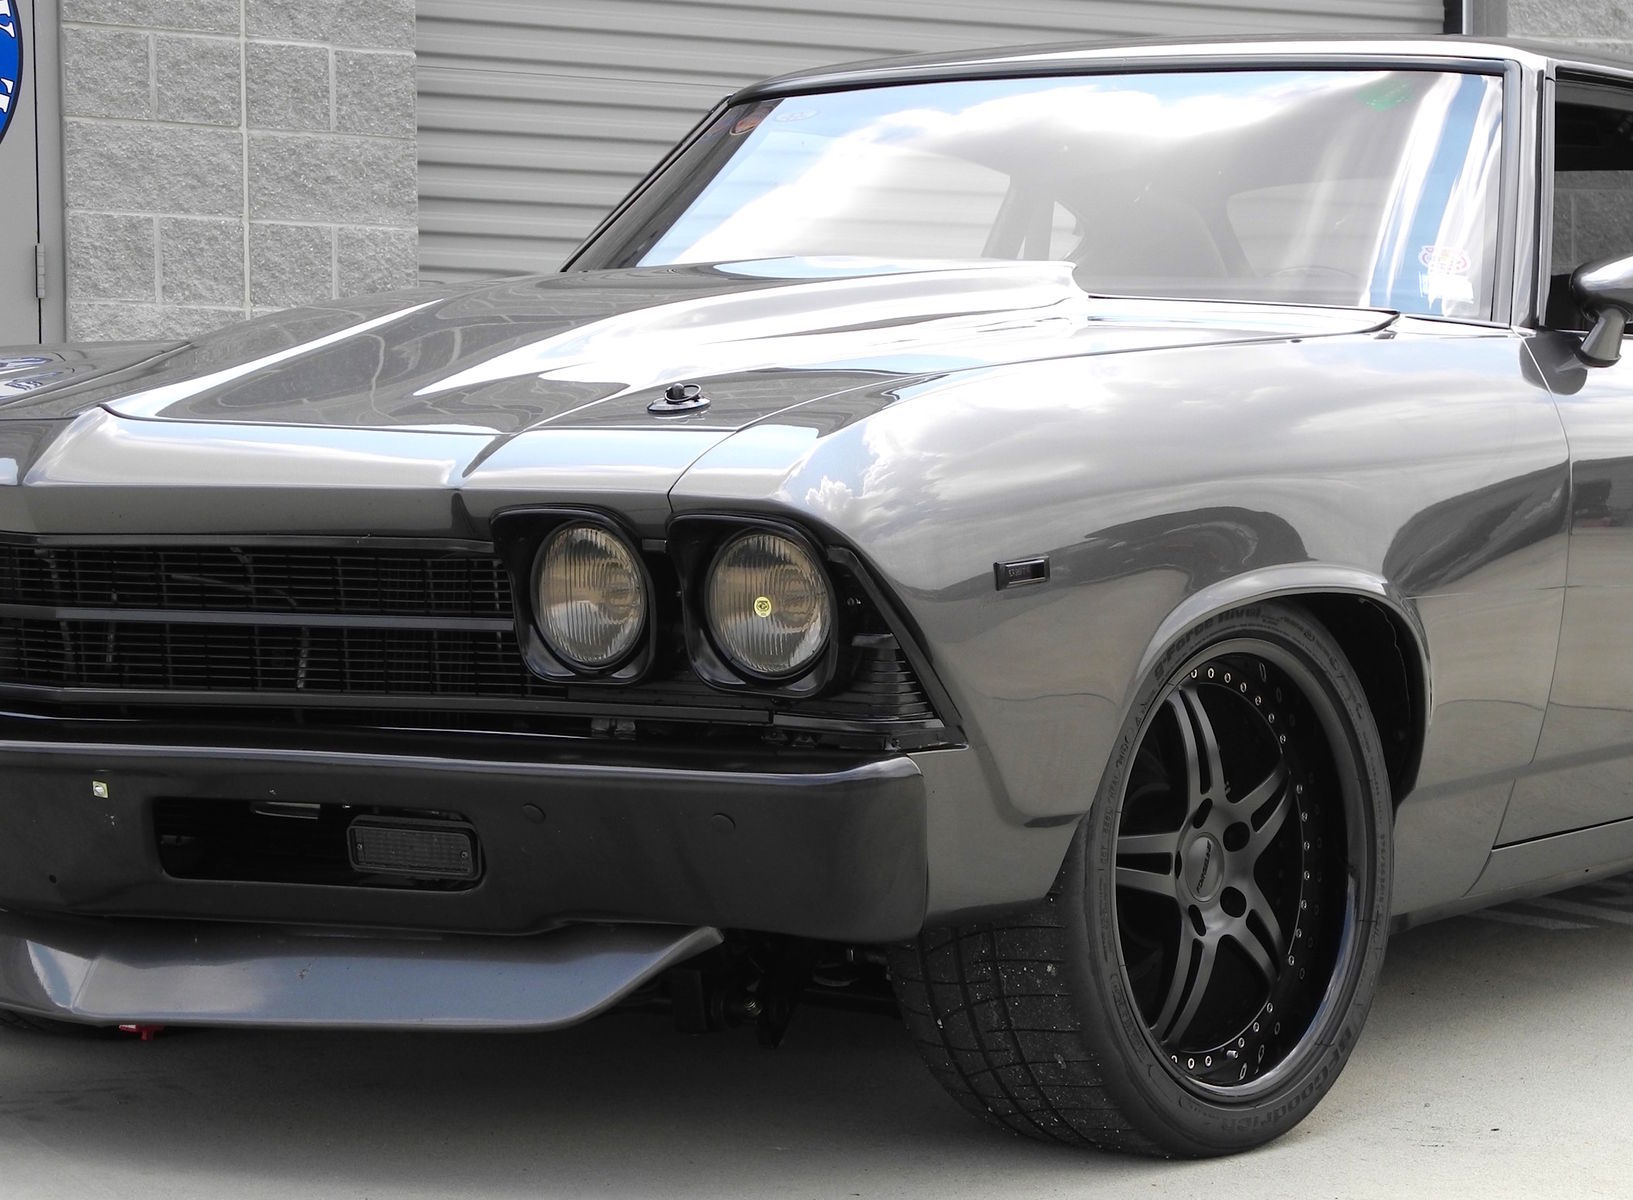 1969 Chevrolet Chevelle | Chevelle on Forgeline SP3P Wheels